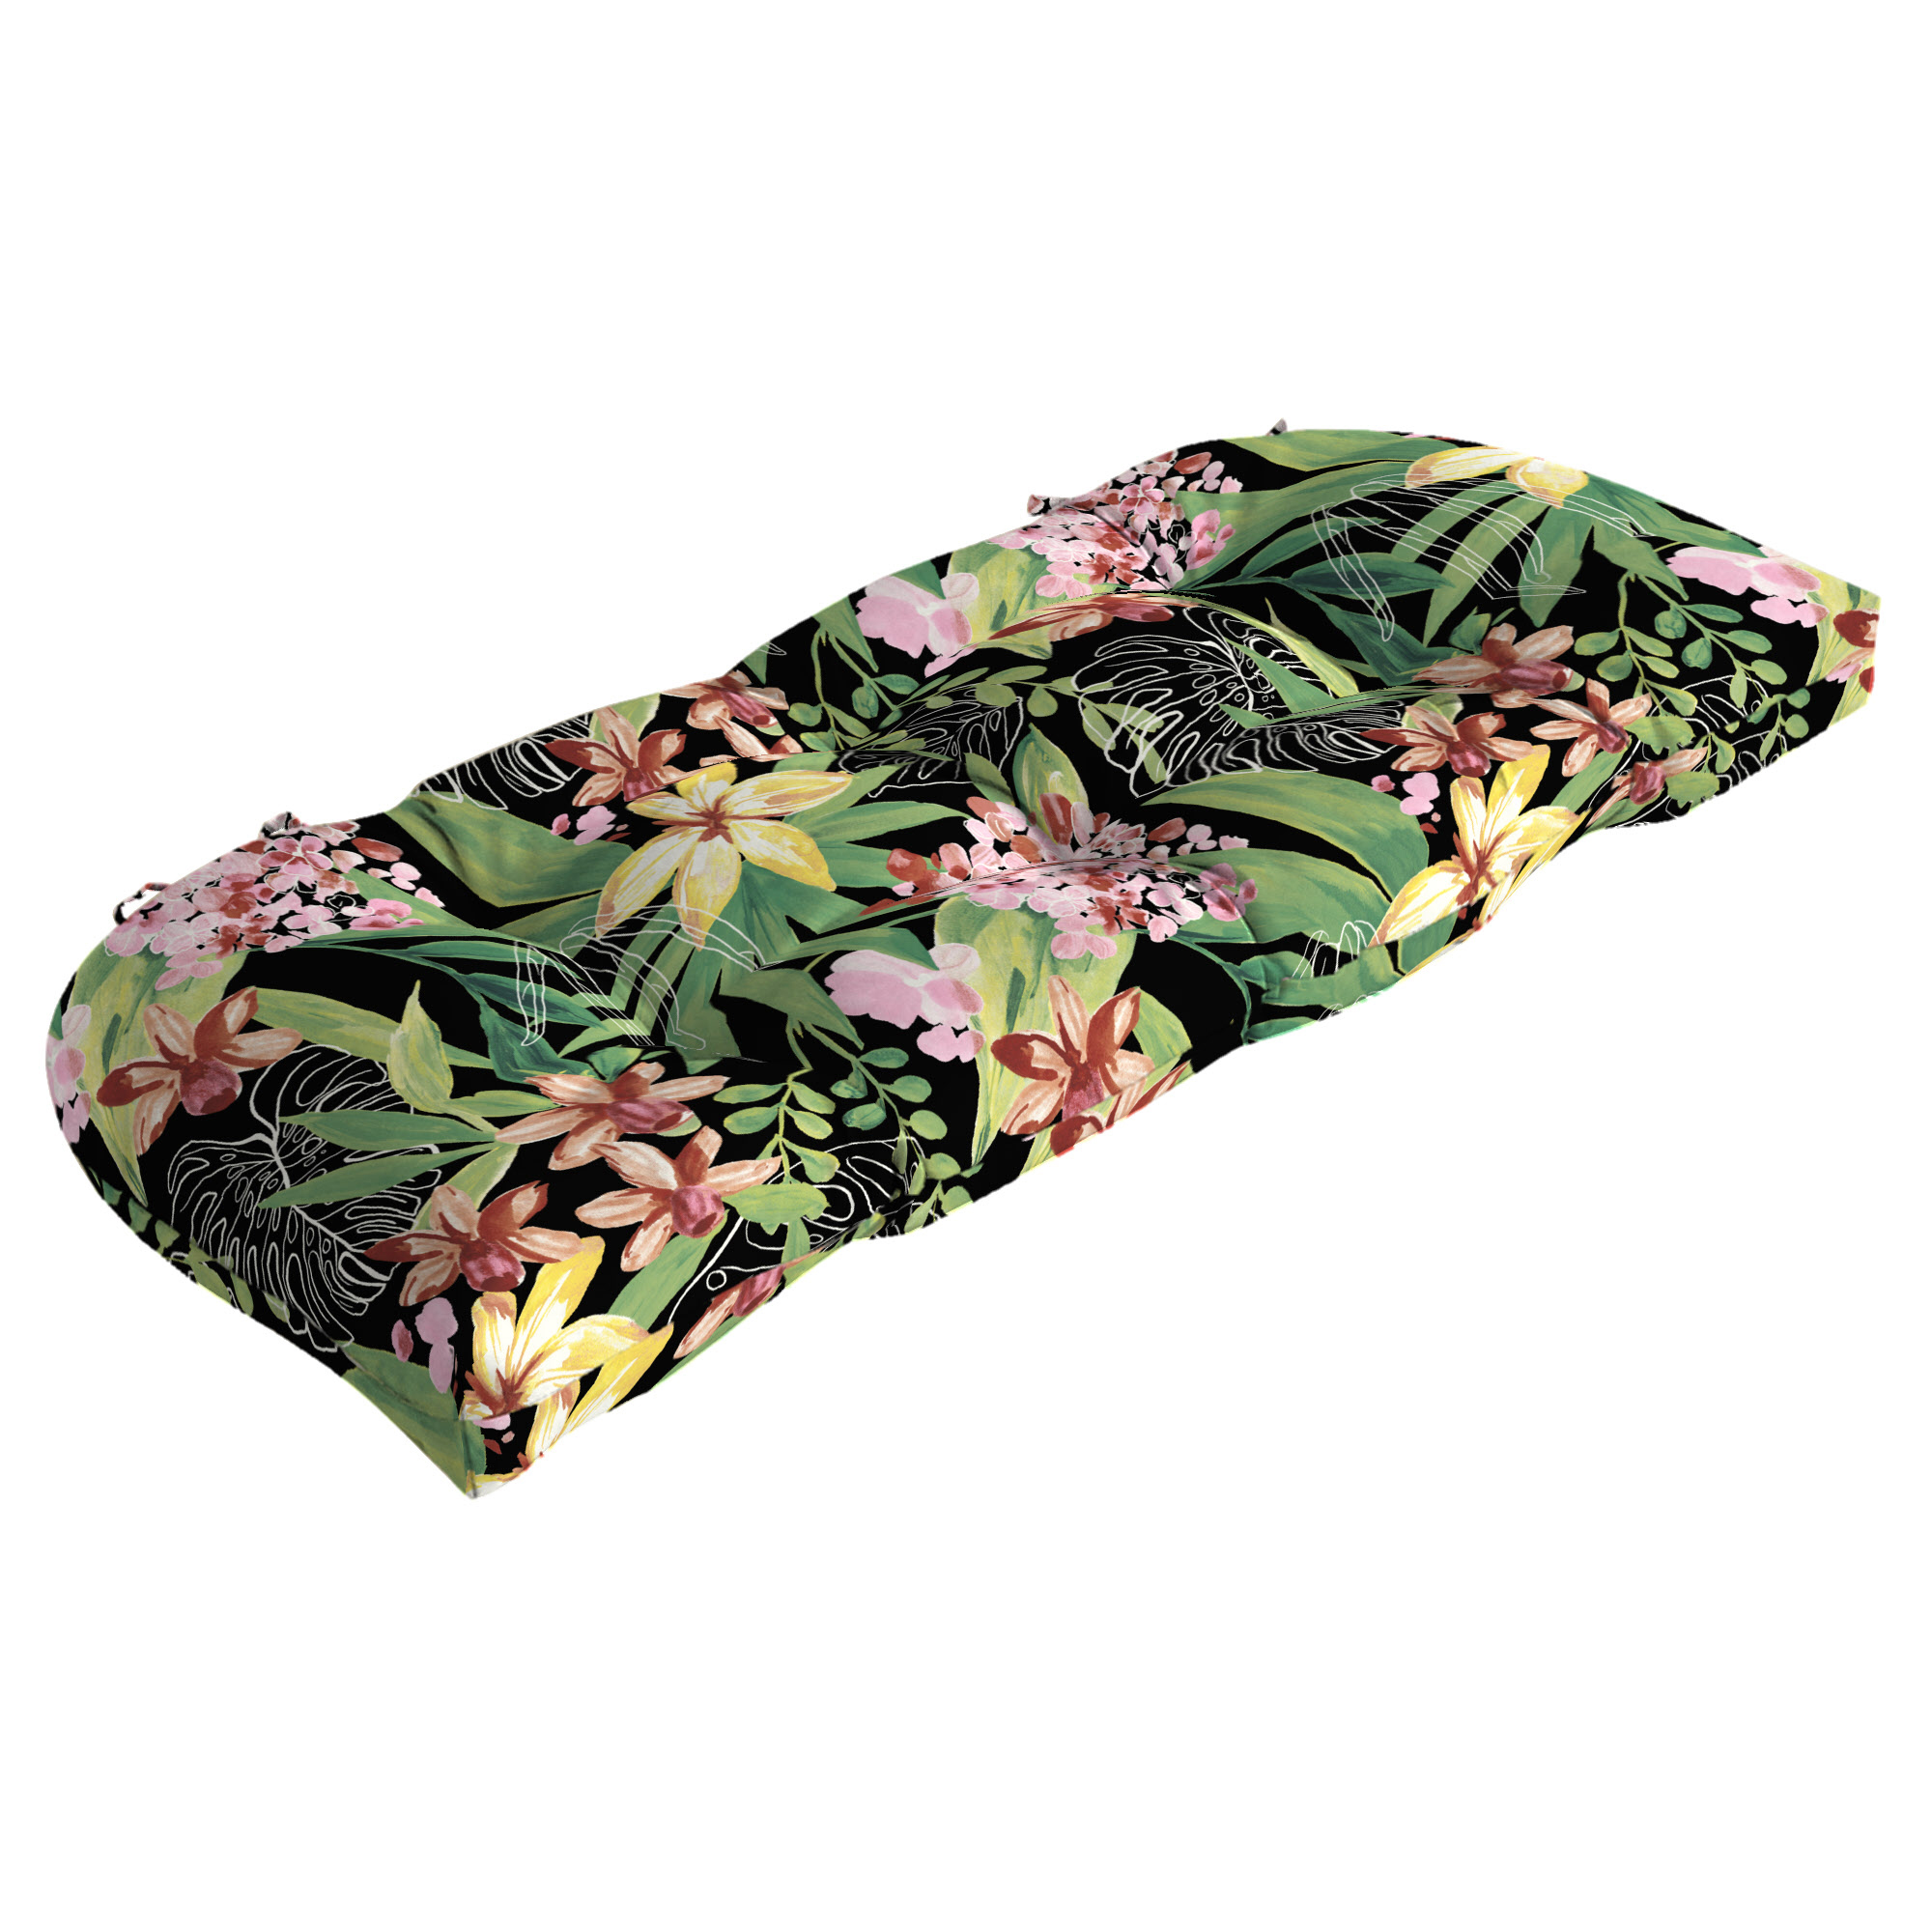 Better Homes & Gardens Black Tropical 18 x 41.5 in. Outdoor Wicker Settee Cushion with EnviroGuard